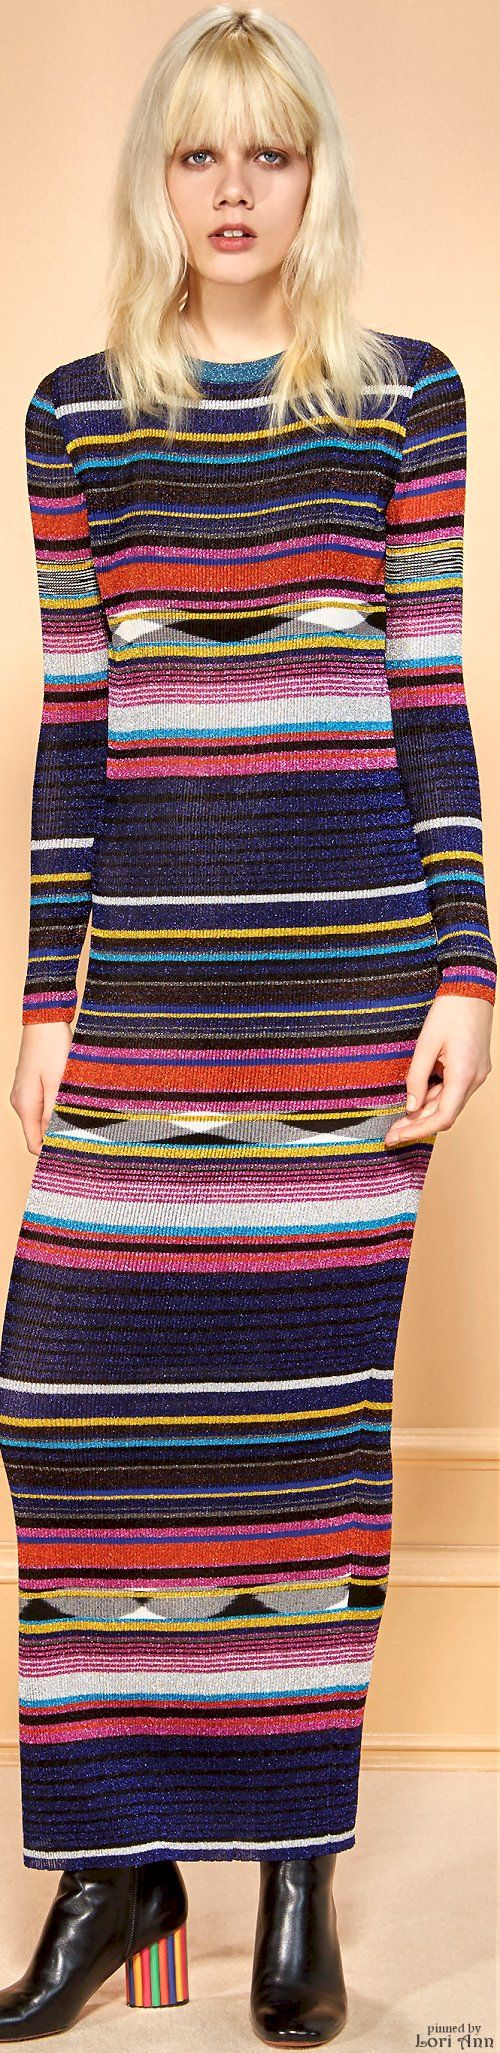 Missoni, Pre-Fall 2016                                                                                                                                                     More